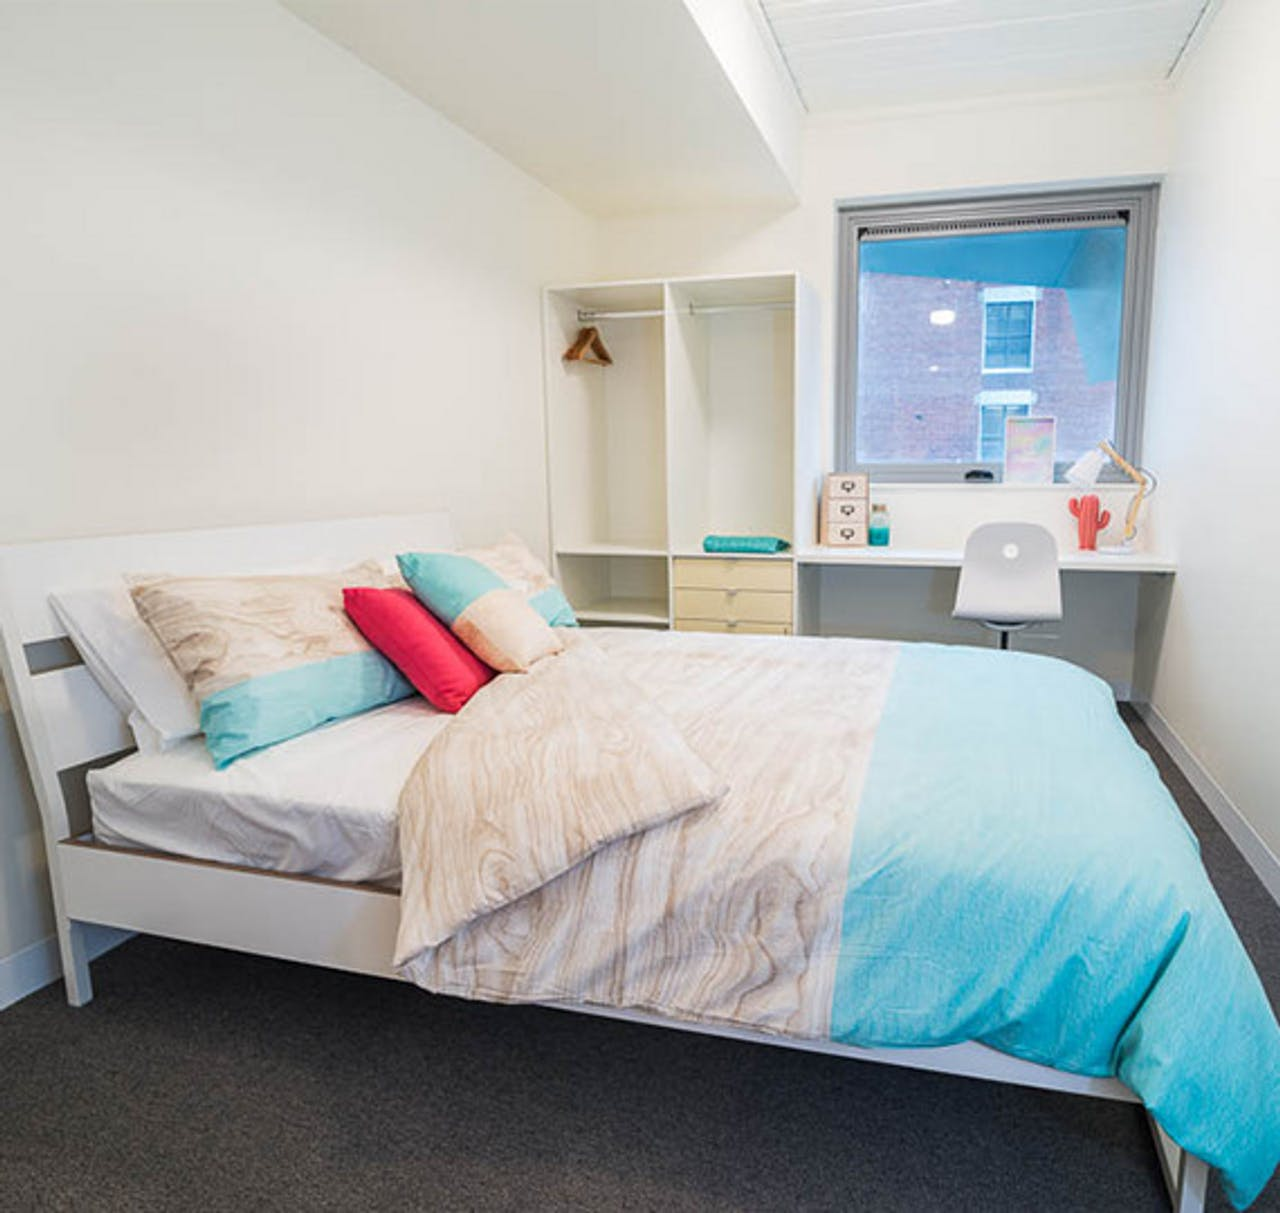 Why is UniAcco the best value for money student accommodation?